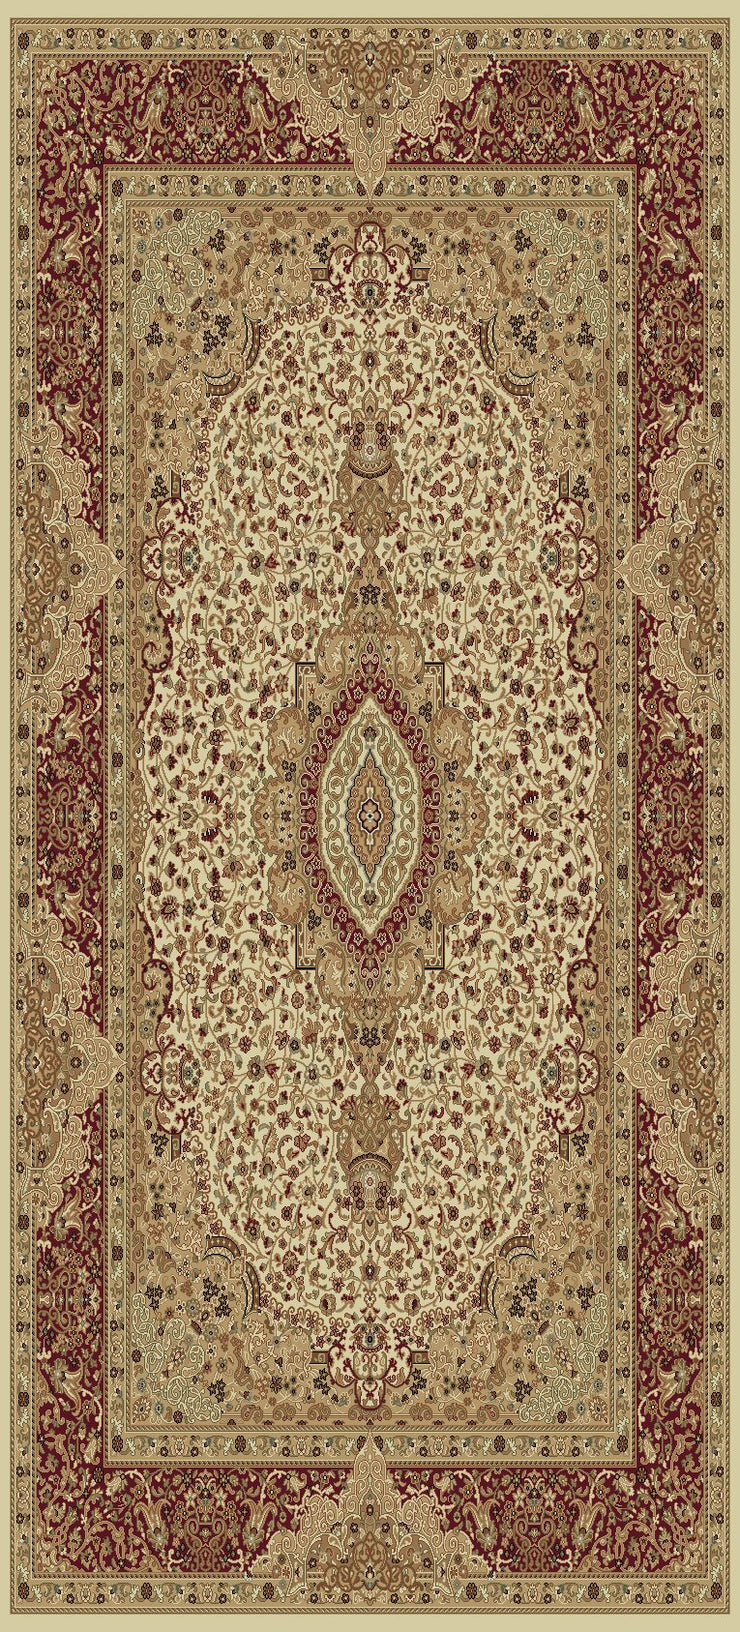 Persian Design 1.5 Million Point Heatset Tabriz 3695 Area Rug by Rug Factory Plus - Rug Factory Plus